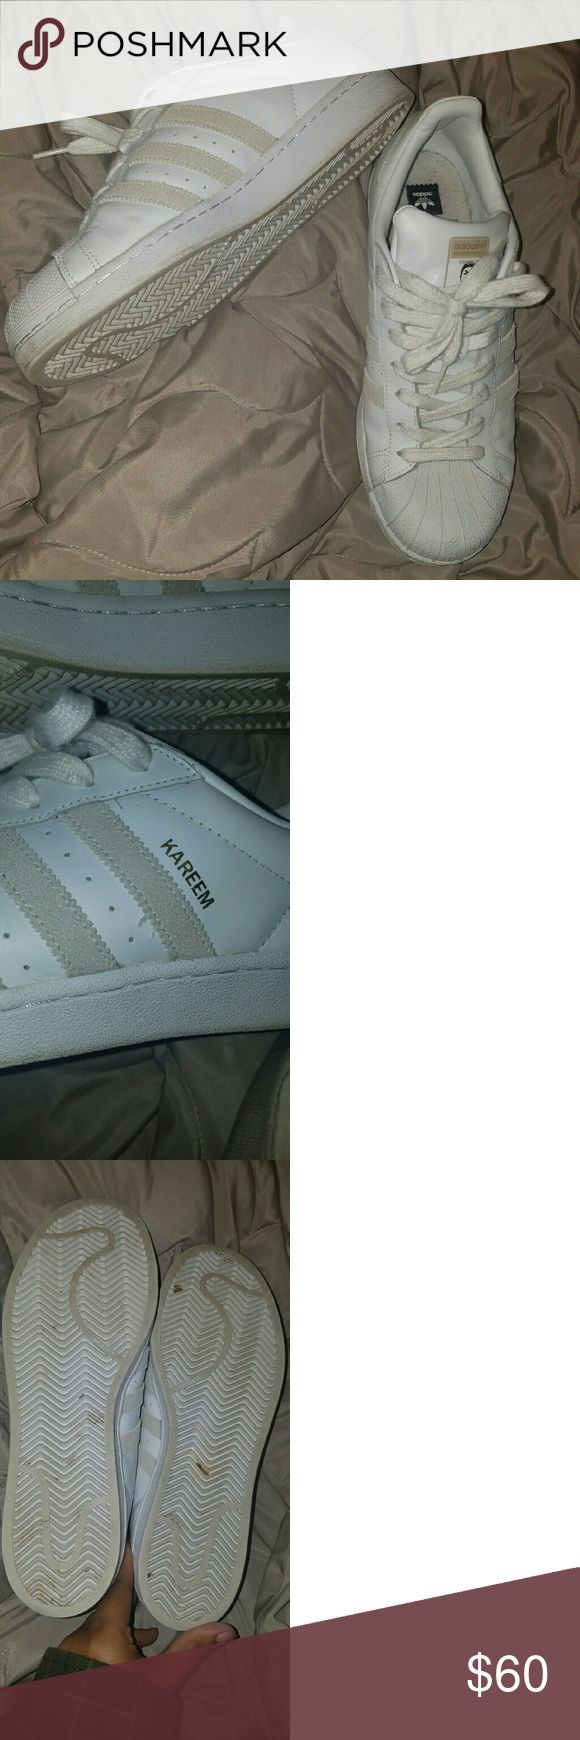 Mens Sz 10 ADIDAS Kareem Campbell Superstar Mens Sz 10 Adidas Kareem Campbell Superstar skateboarding sneaker, GUC (worn a few times)  non smoking no pet home,  additional pics avail if wanted Adidas Shoes Sneakers